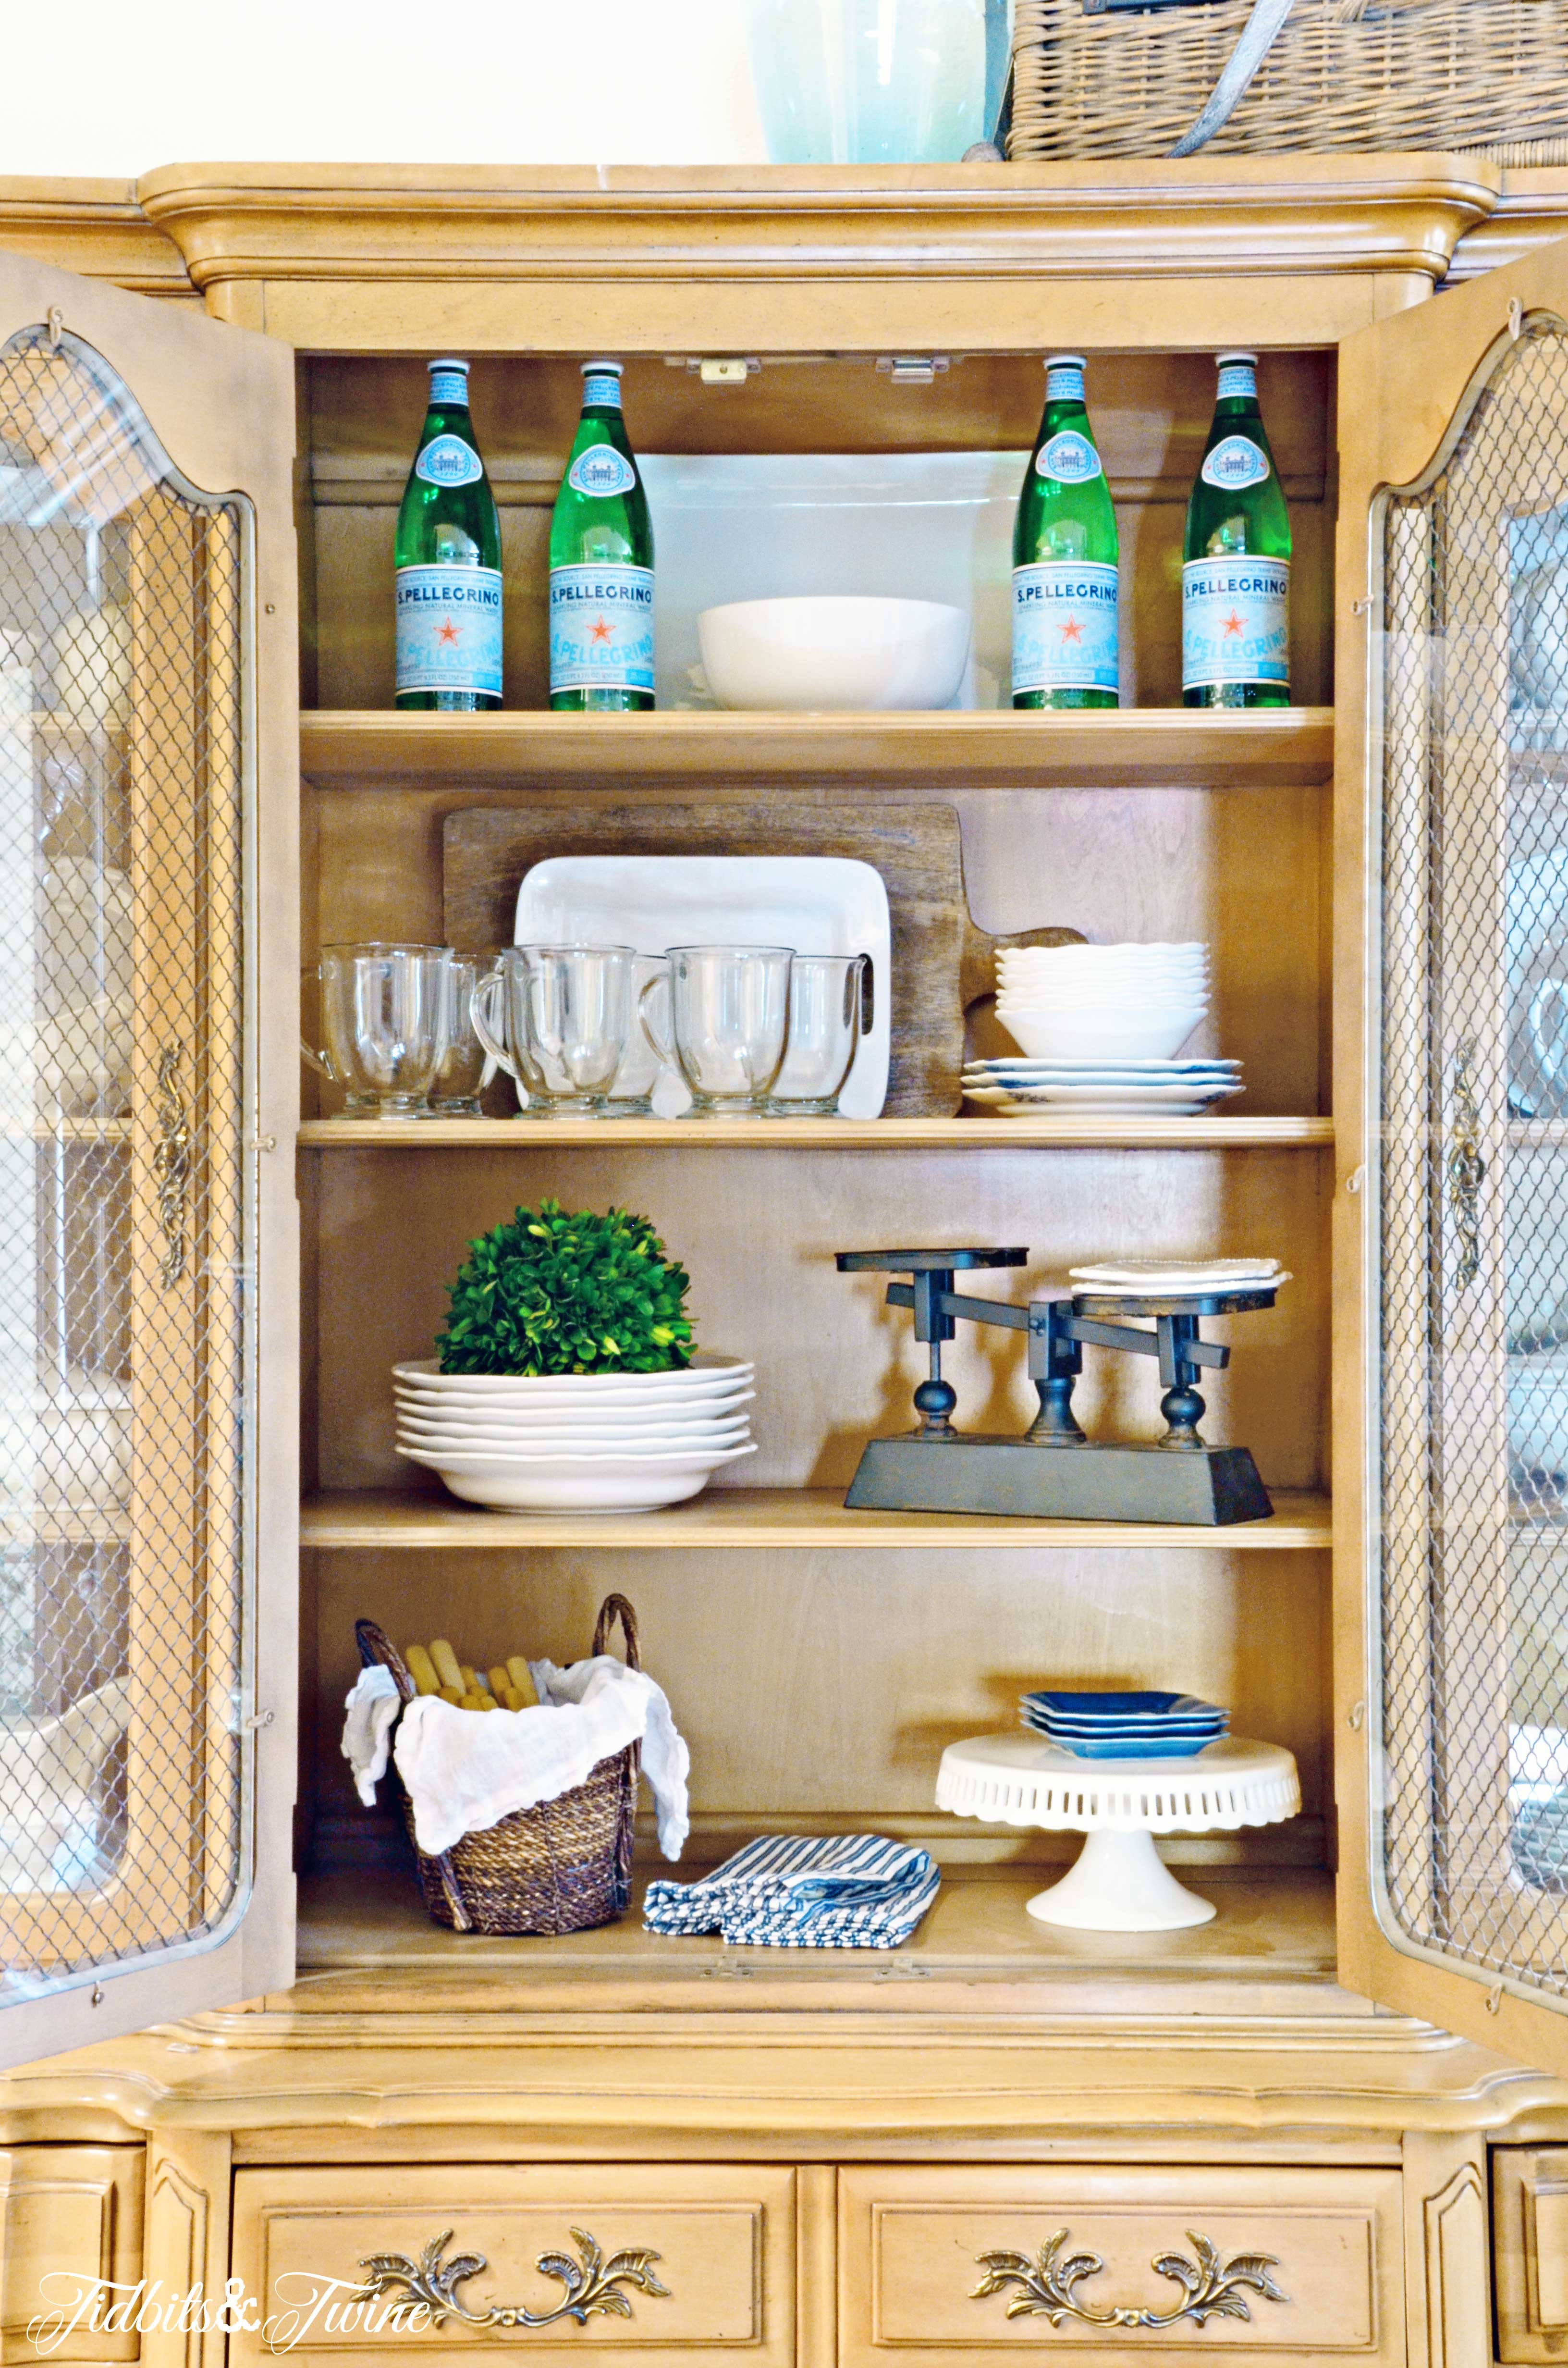 fresh cabinet great design decor furniture in home ideas bobs room improvement china lovely a amazing decorating on